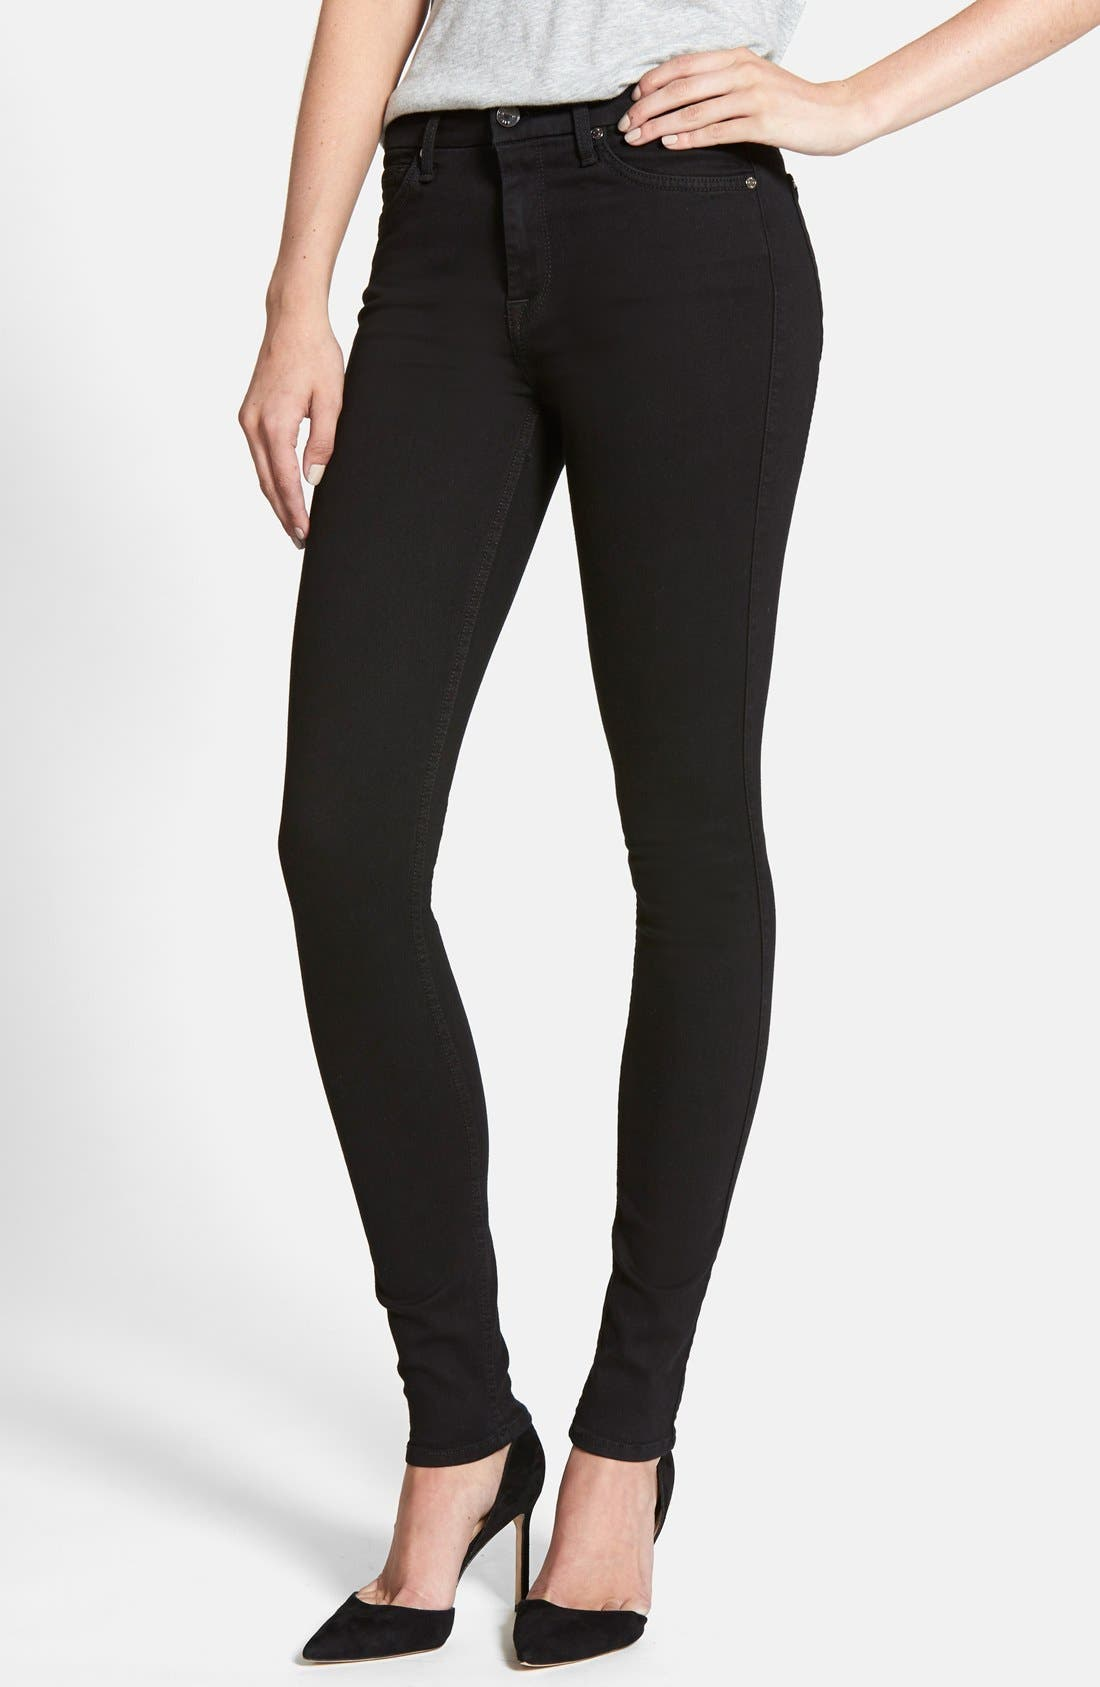 Main Image - 7 For All Mankind® 'Slim Illusion Luxe' High Waist Skinny Jeans (Black)